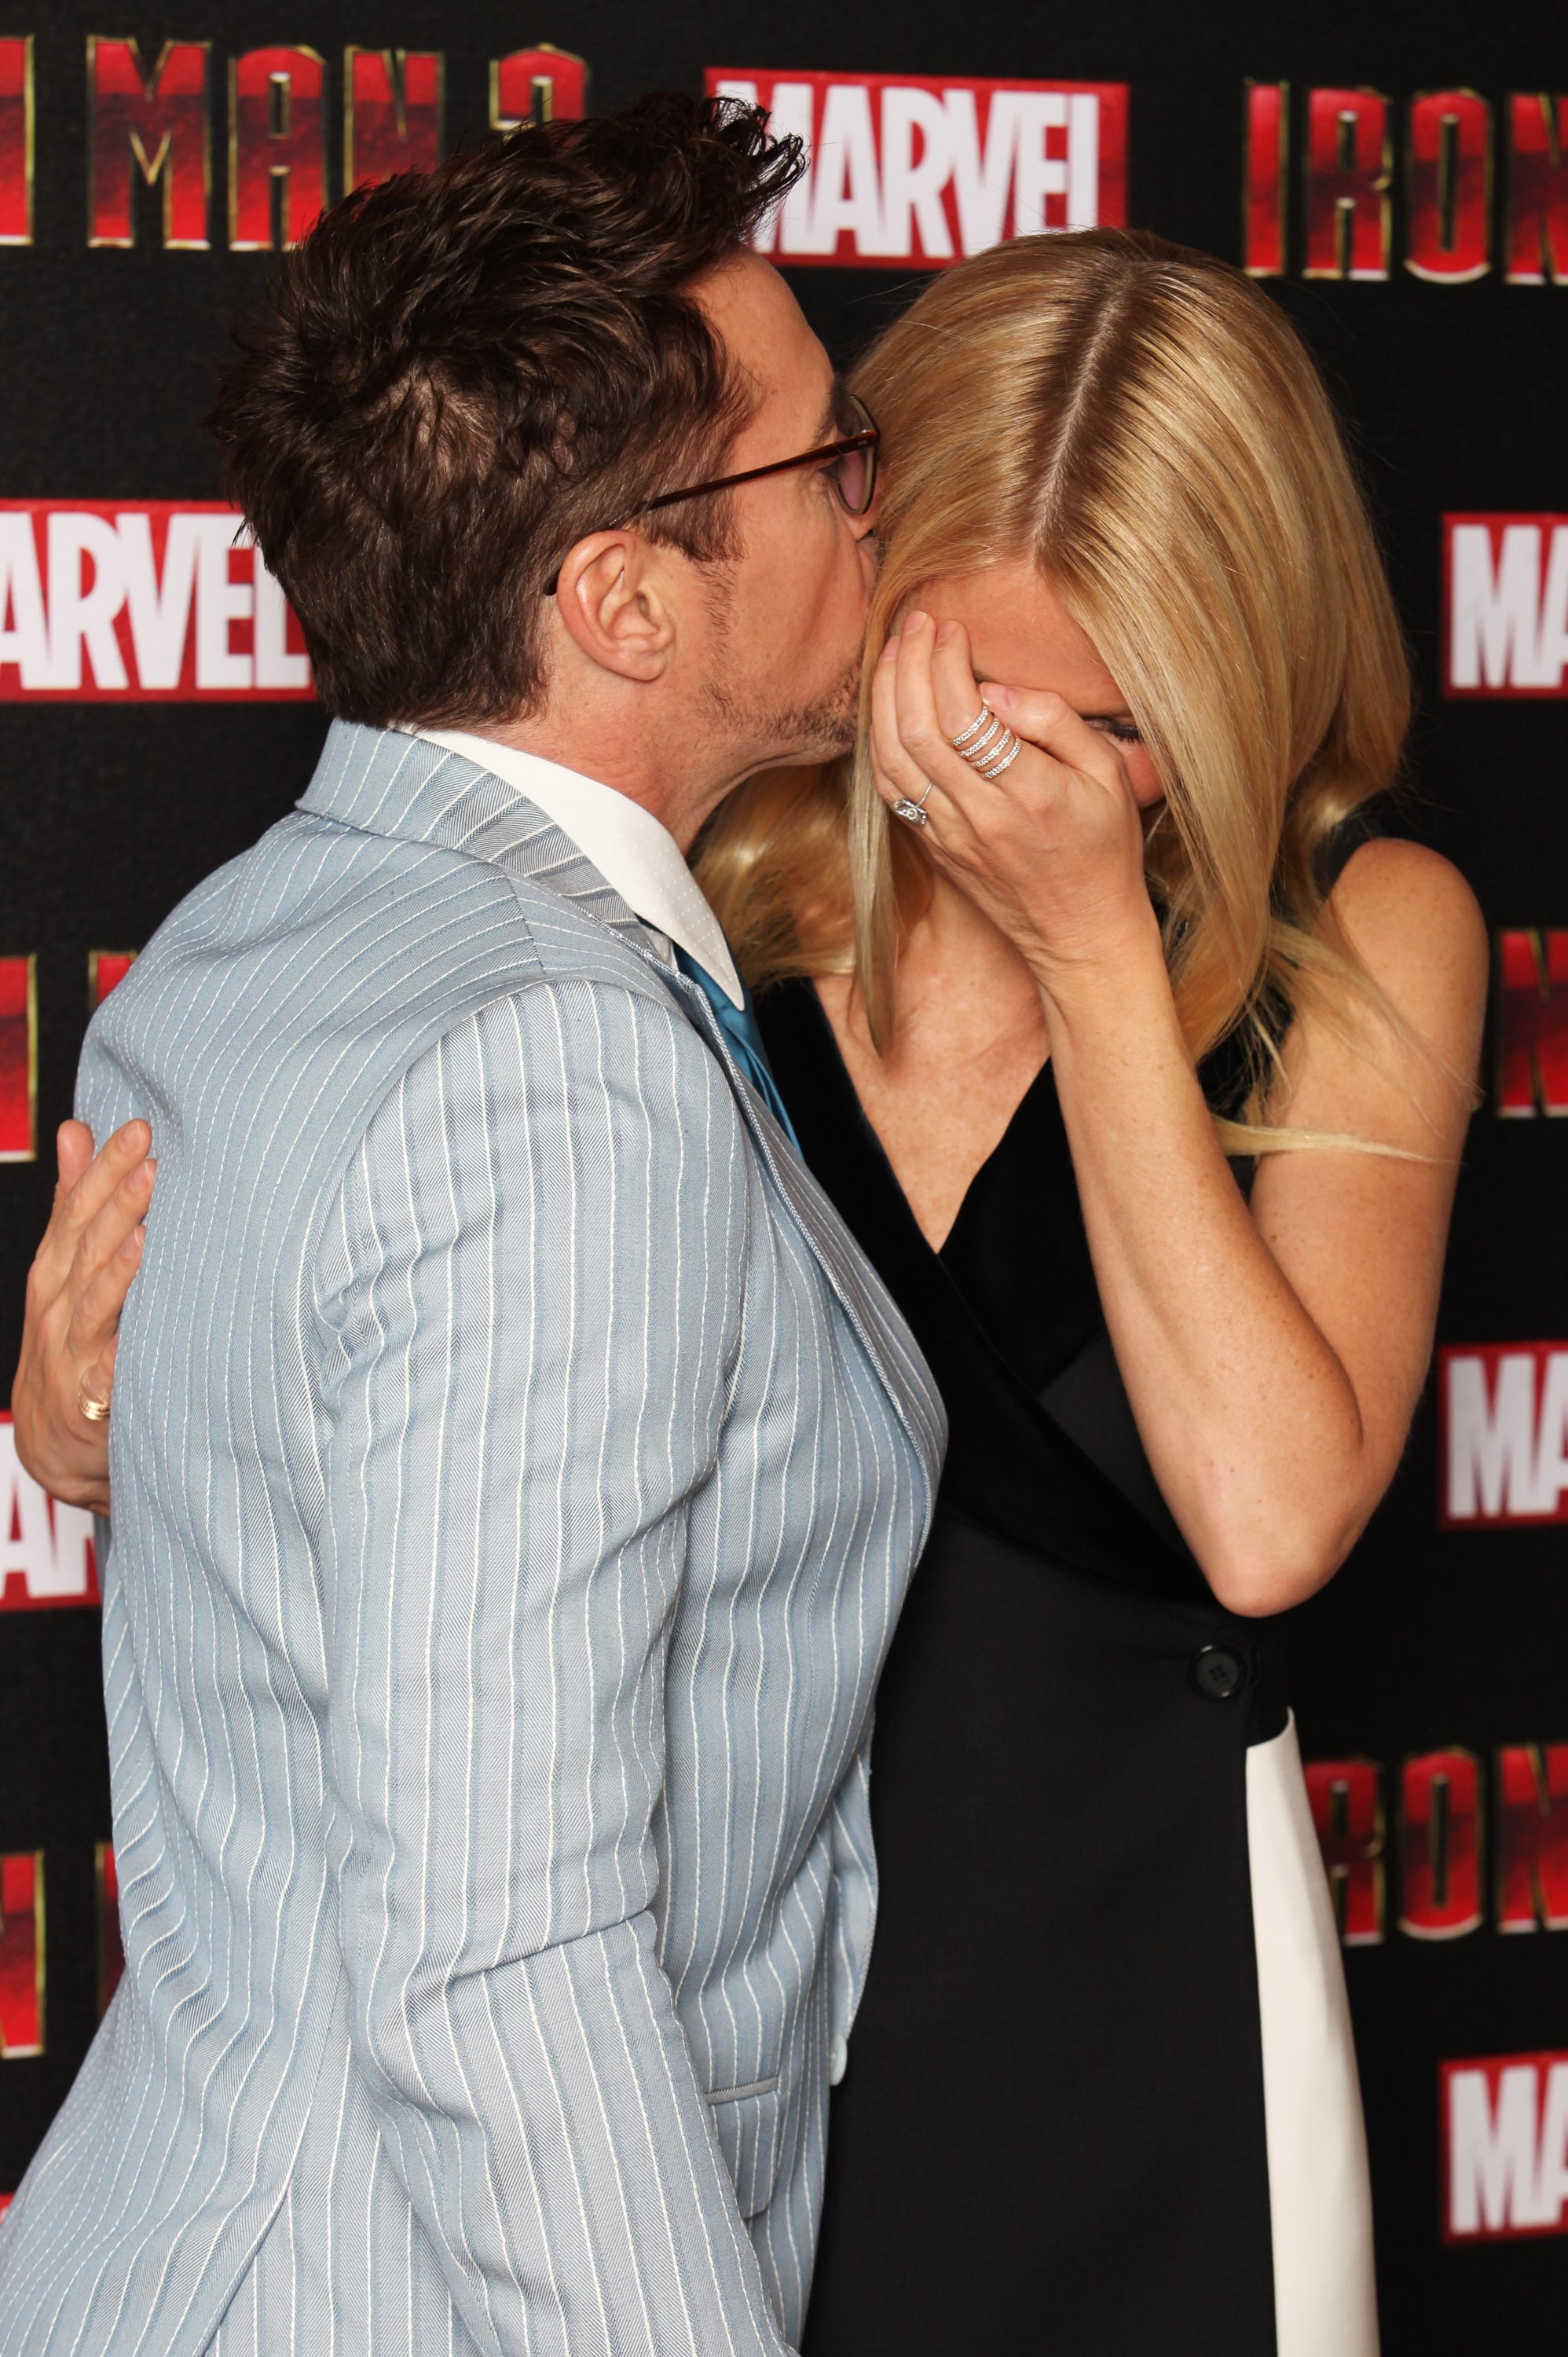 Gwyneth and RDJ Get Cute in the UK For Iron Man